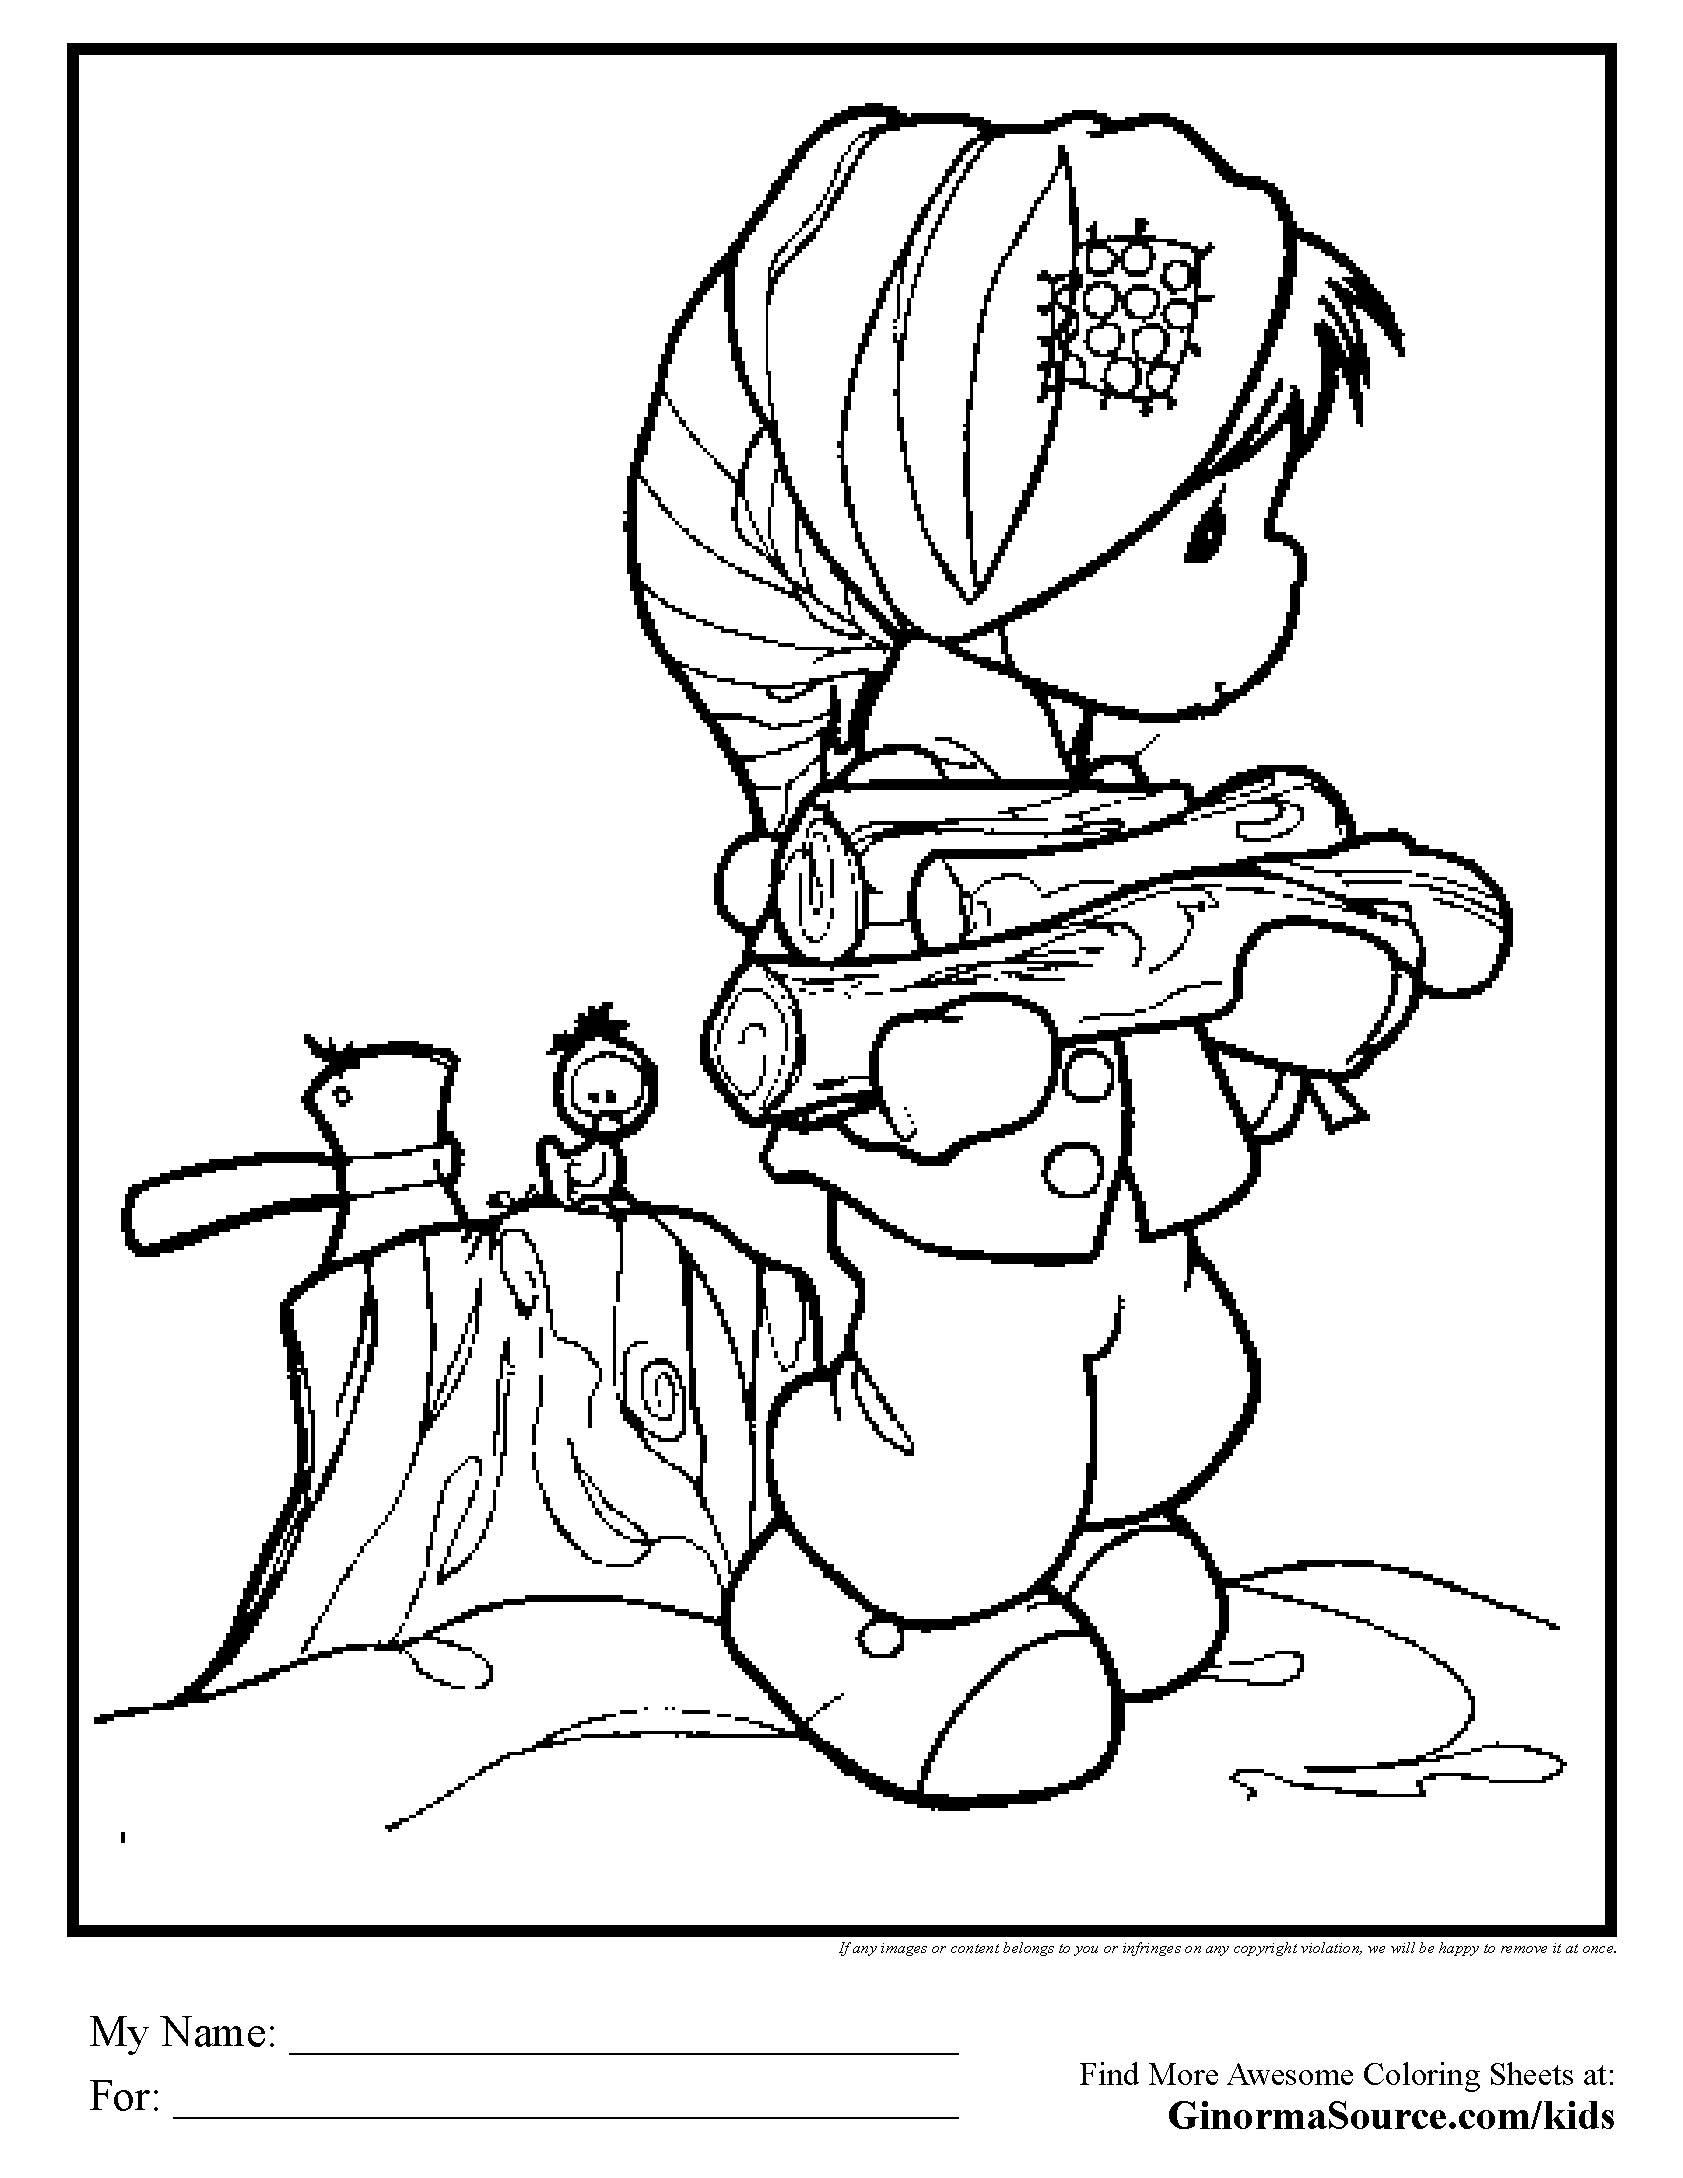 Precious Moments Lumberjack Minnesota Snow Coloring Page Free Download